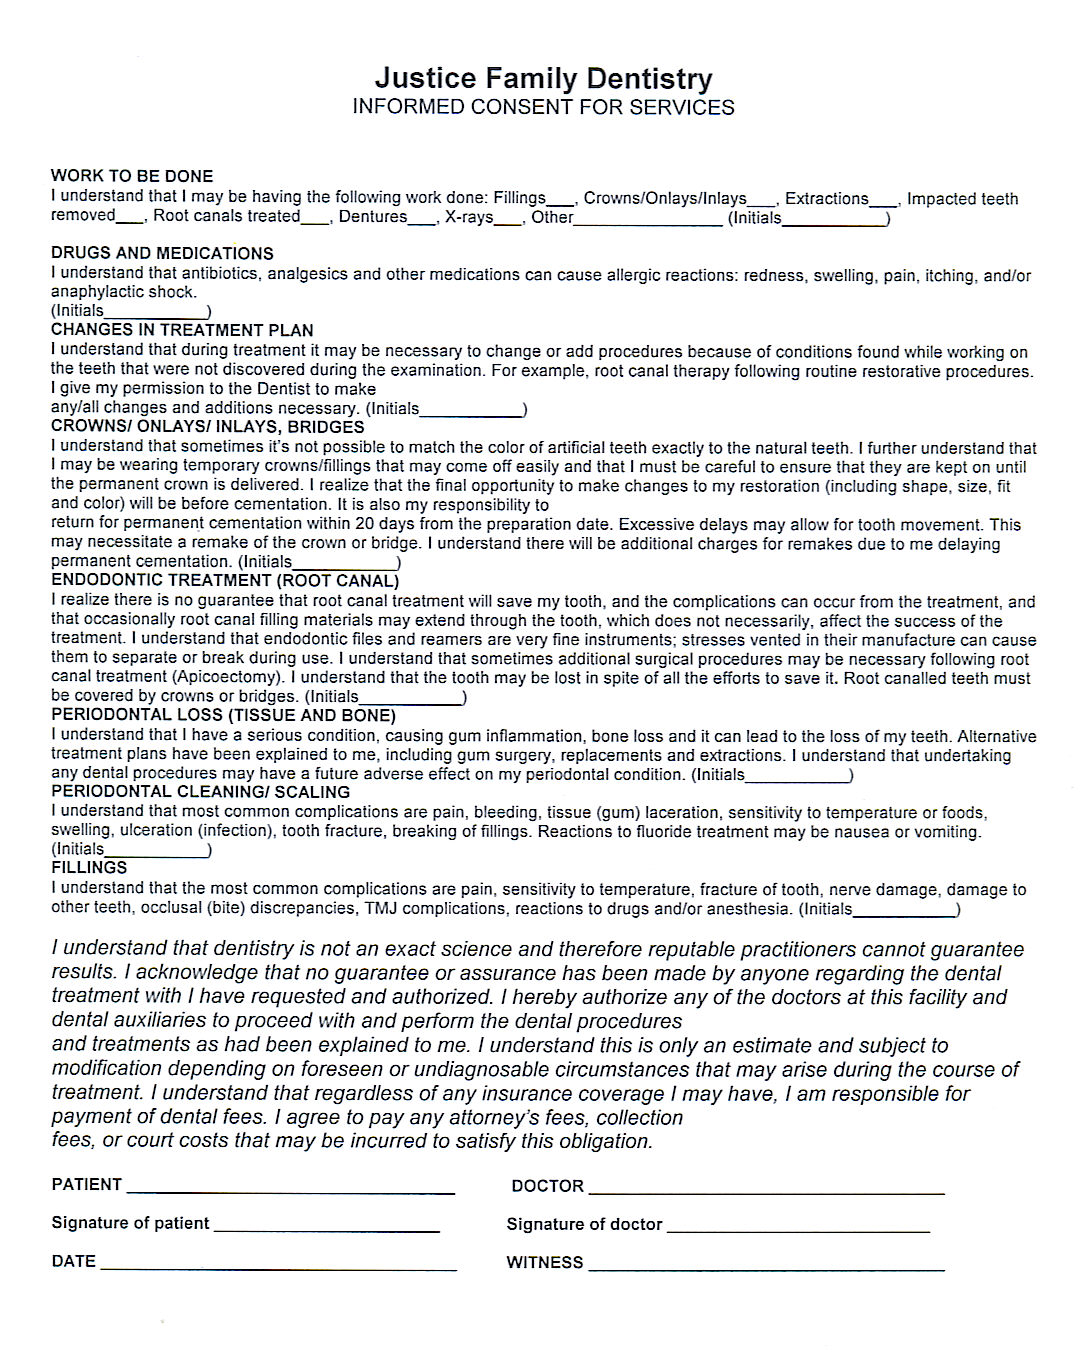 W 9 Form 2015 In Spanish | Professional resumes sample online